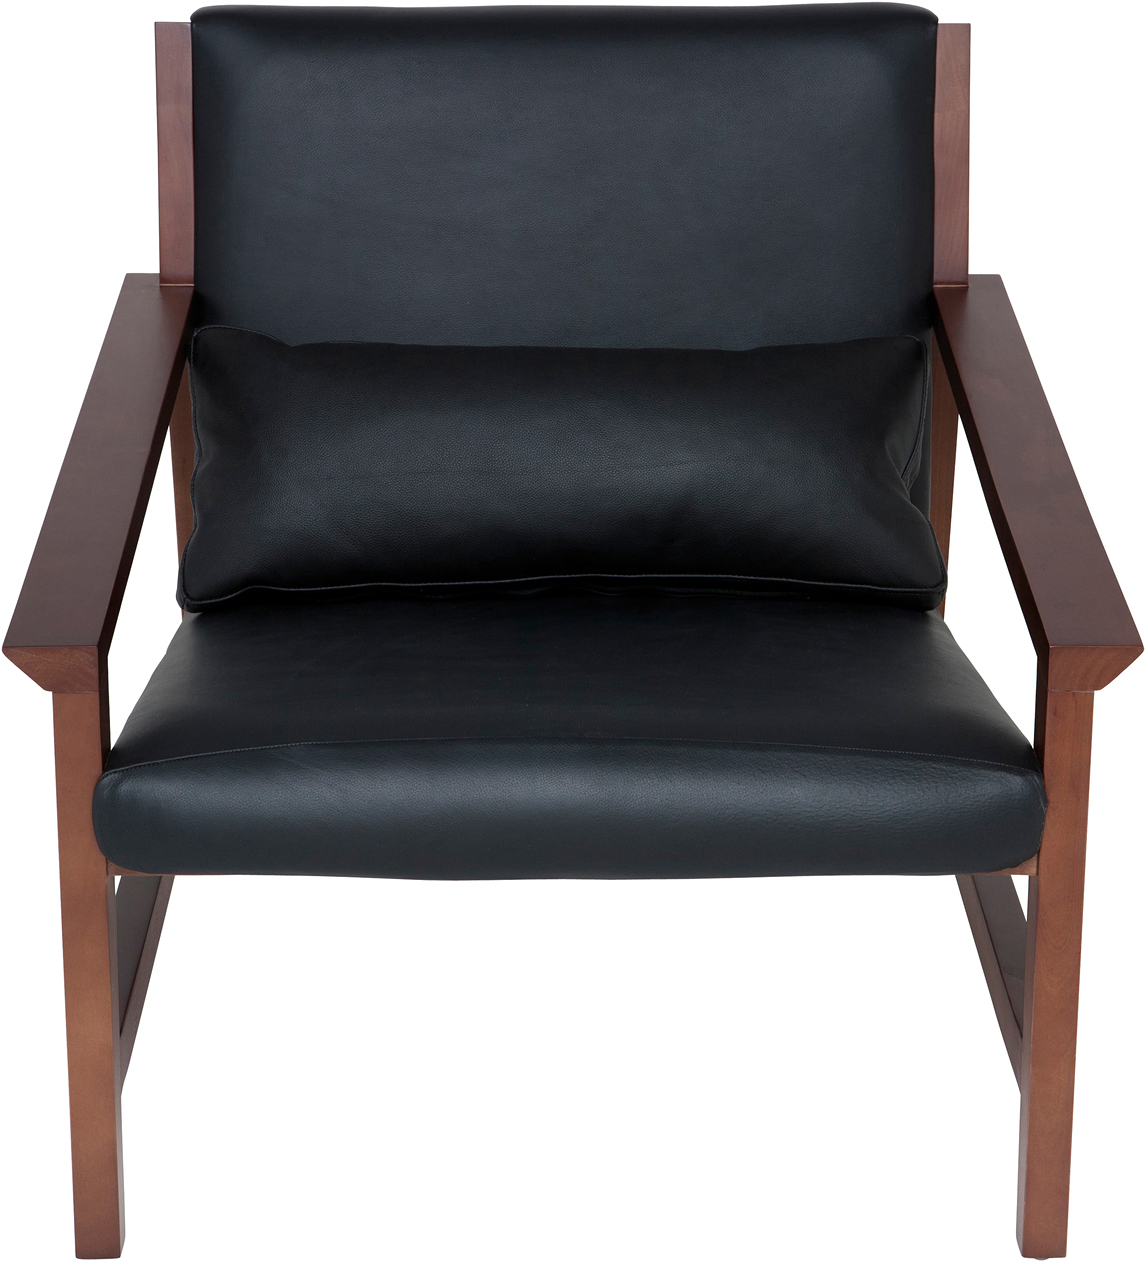 the nuevo bethany lounge chair